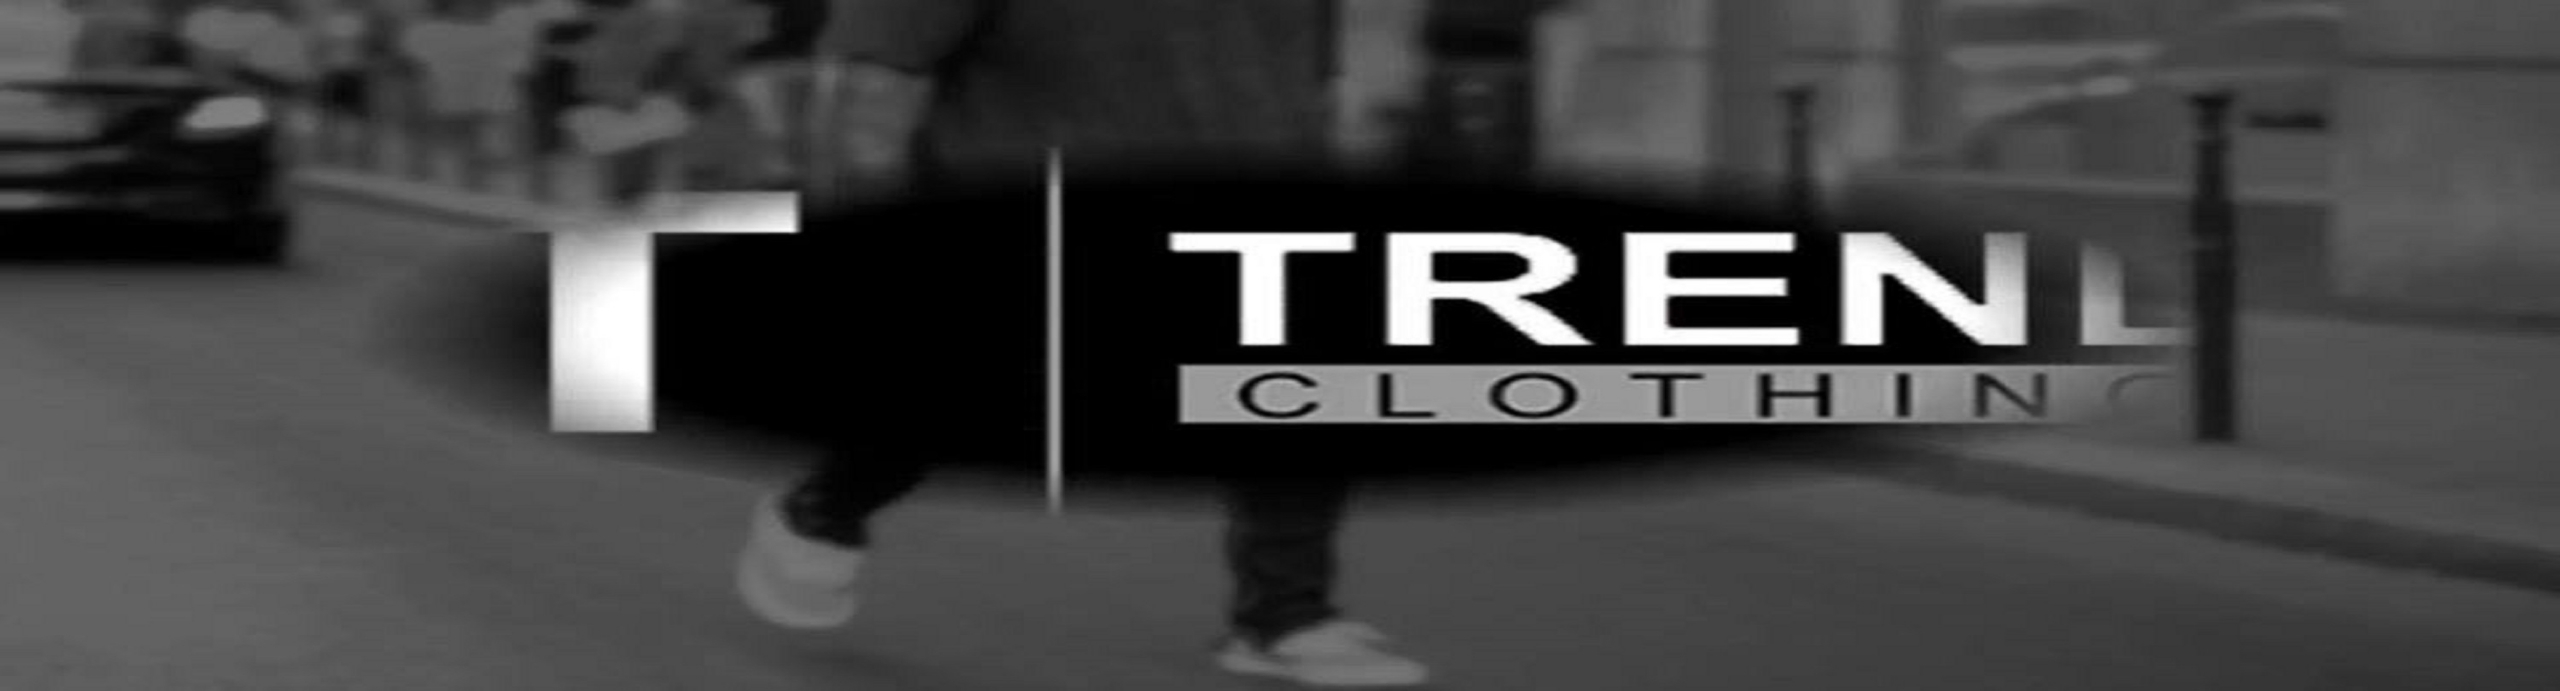 Trend Clothing (@trend-clothing) Cover Image